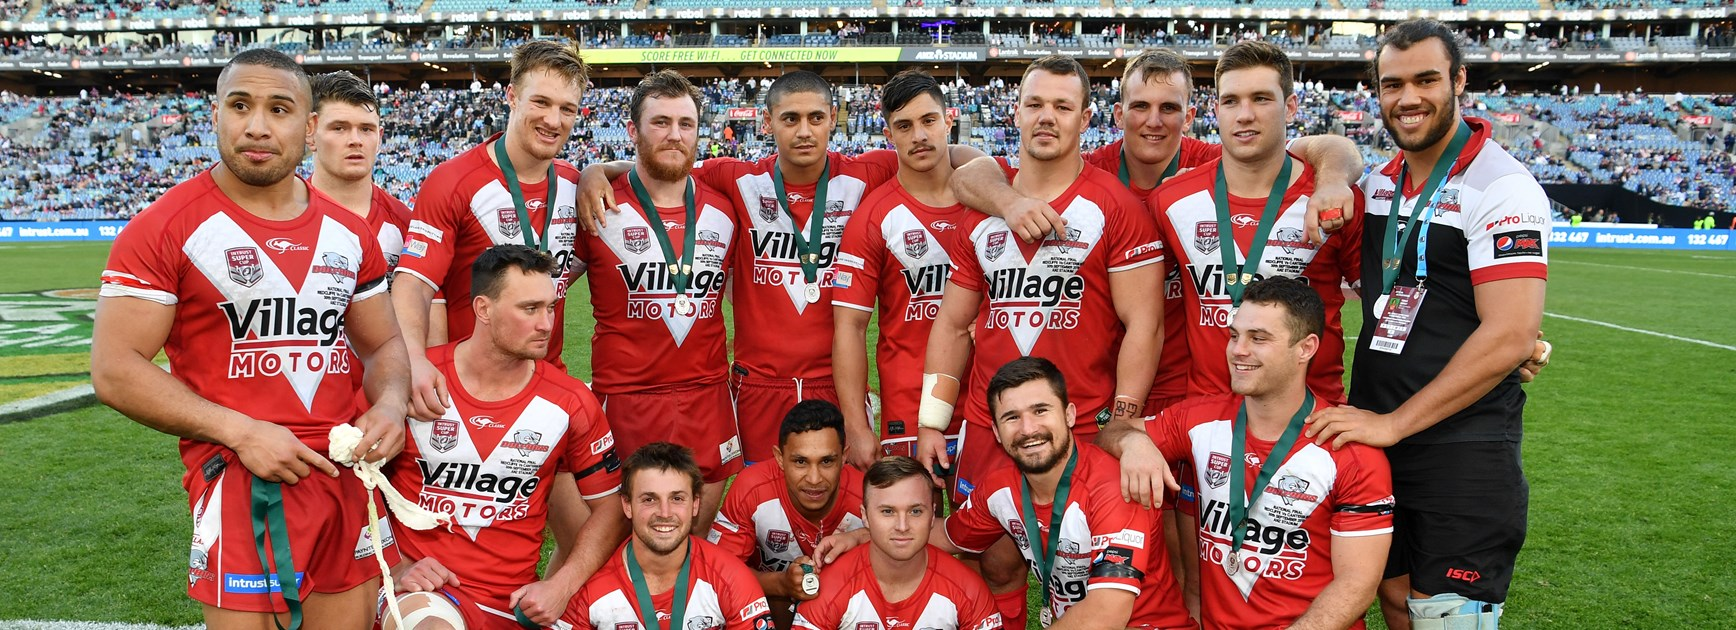 Redcliffe Dolphins' 2018 Intrust Super Cup winners lost the interstate clash.